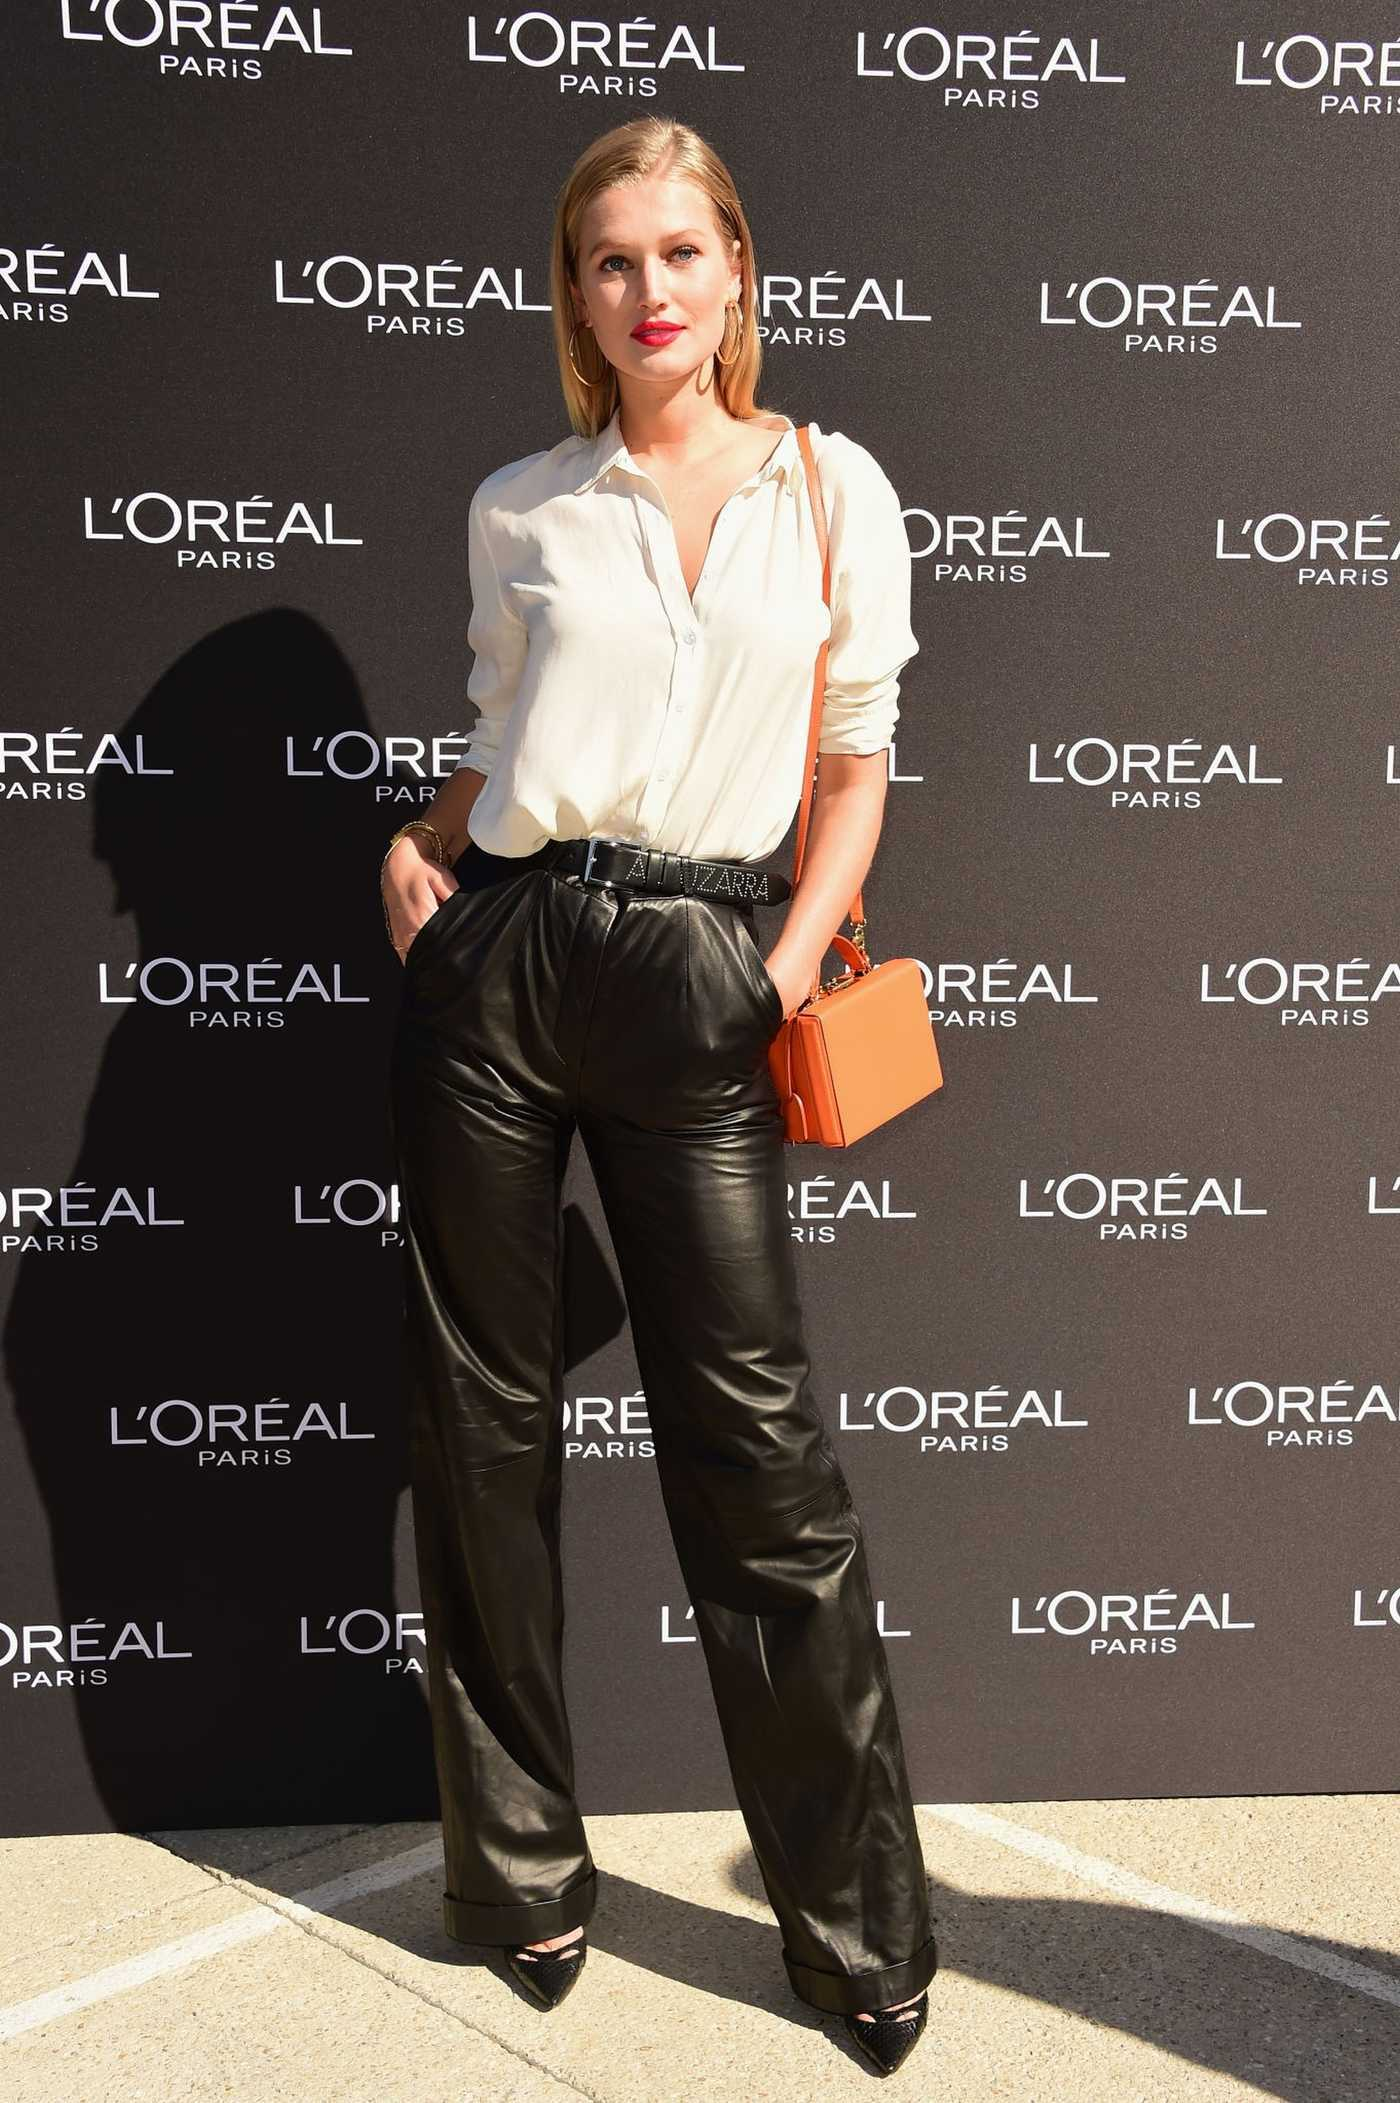 Toni Garrn Attends the L'Oreal Fashion Show During the Paris Fashion Week in Paris 09/30/2018